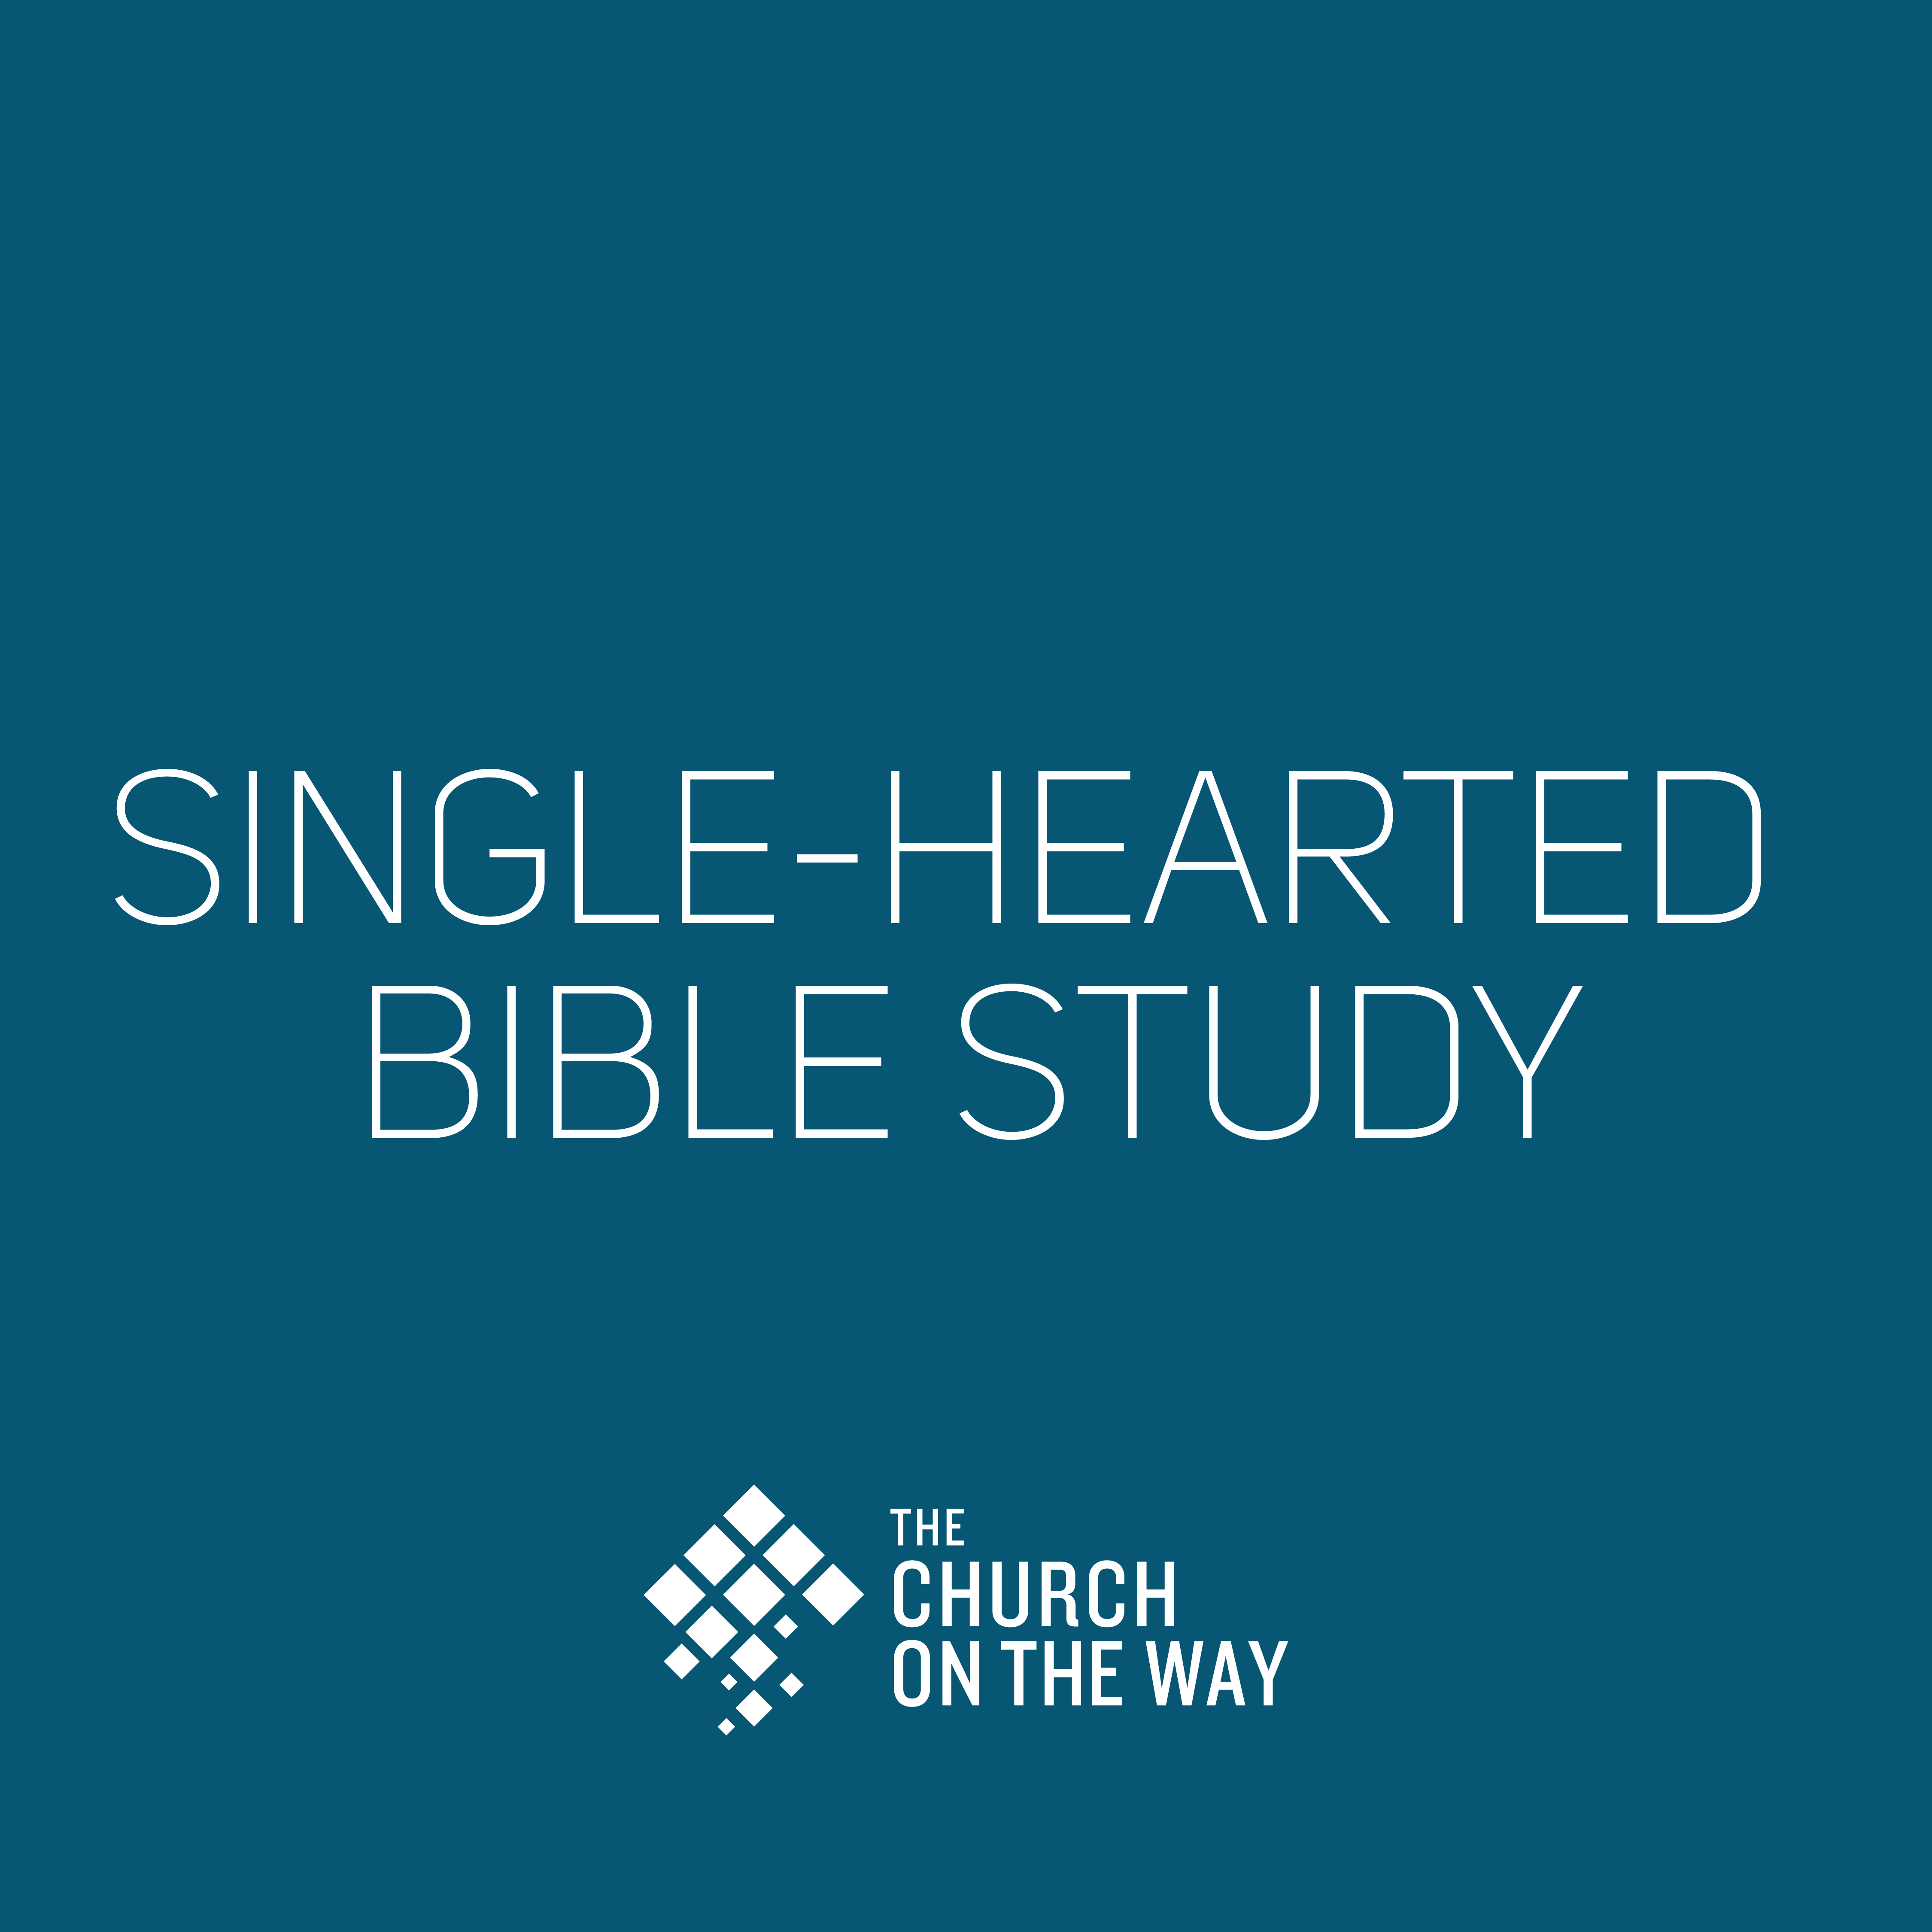 Single hearted bible study